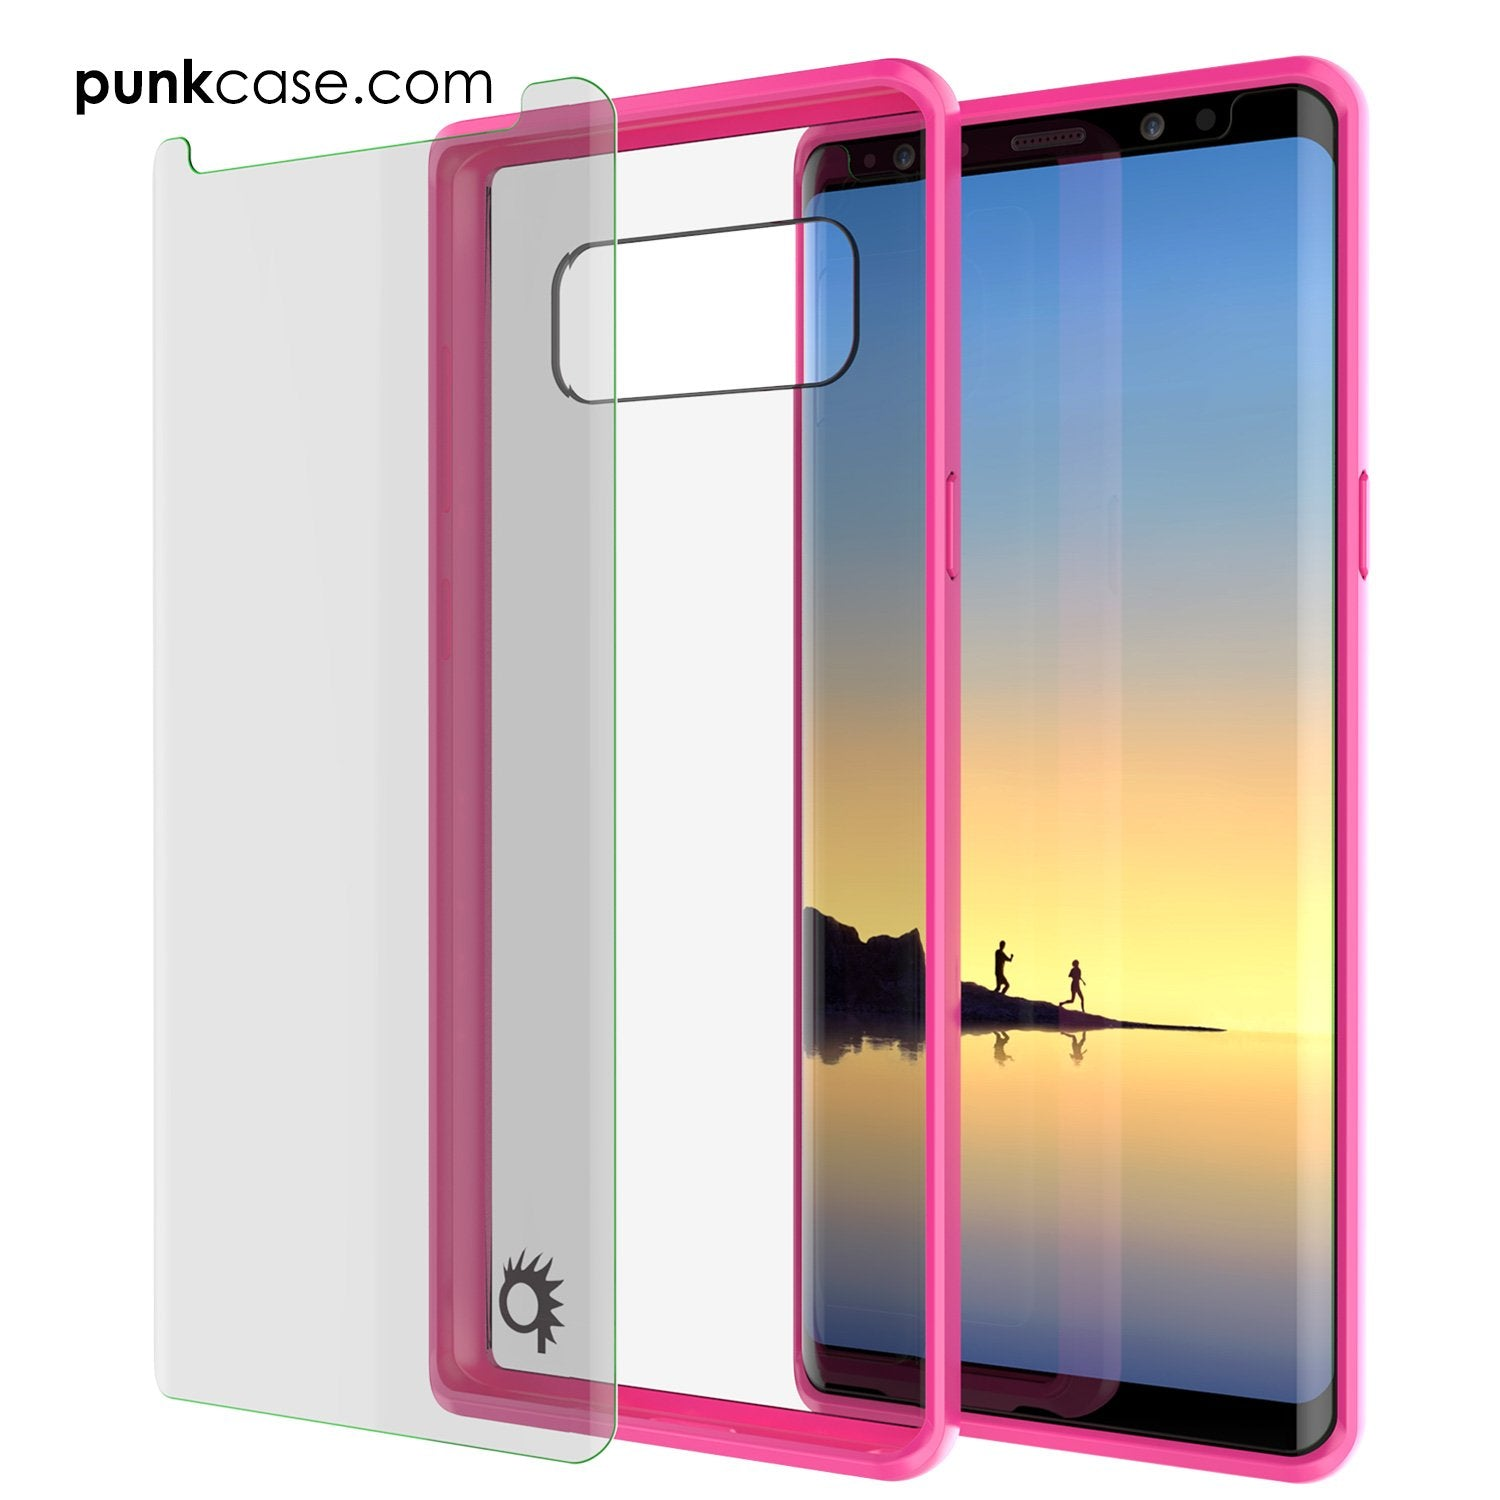 Galaxy Note 8 Case, PUNKcase [LUCID 2.0 Series] [Slim Fit] Armor Cover w/Integrated Anti-Shock System & Screen Protector [Pink]